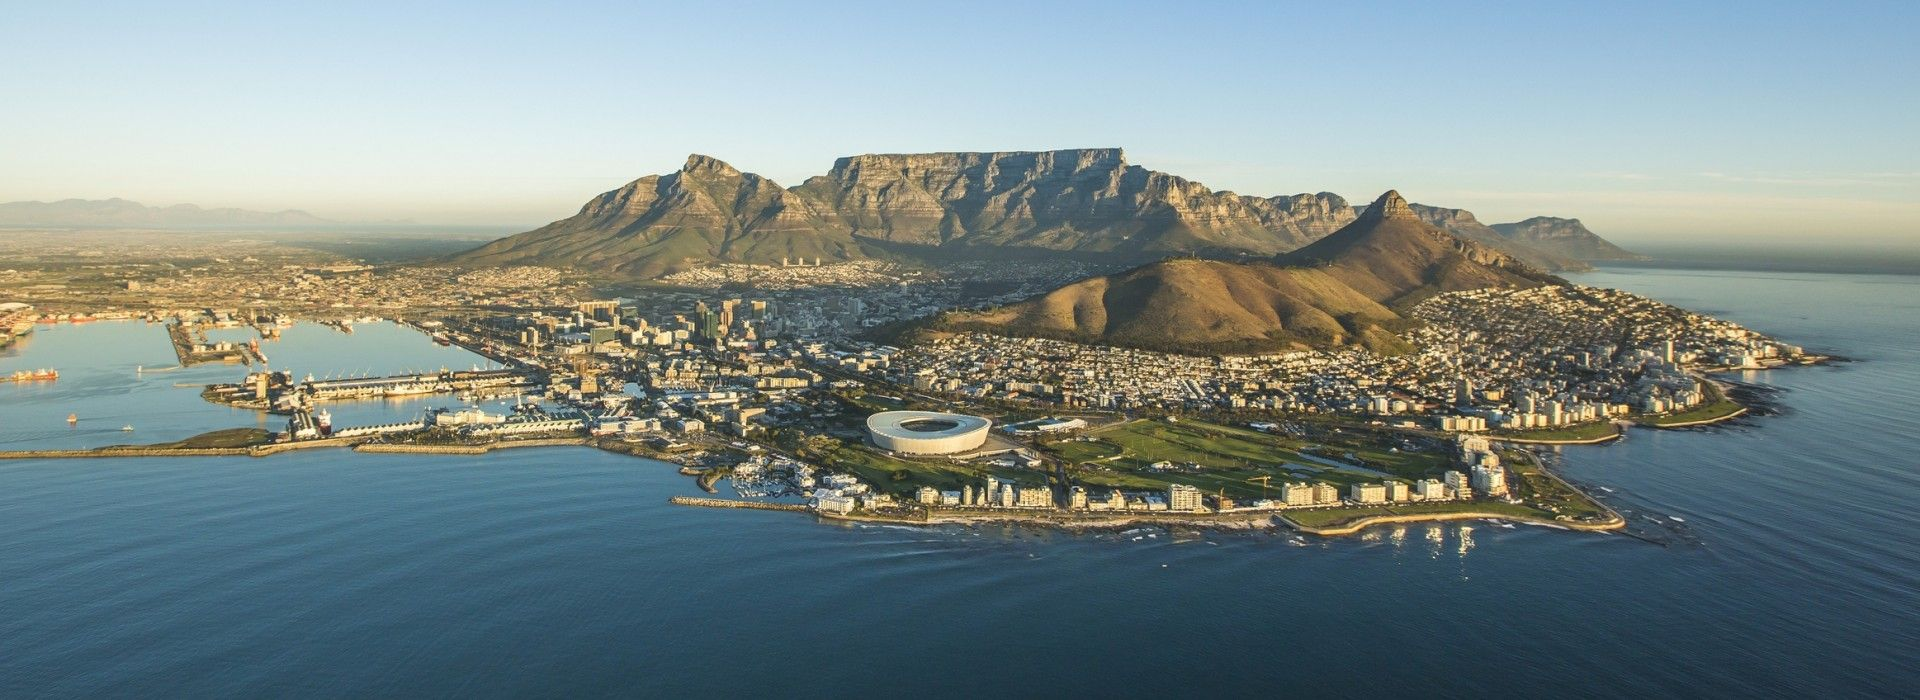 Travelling Cape Town - Tours and Trips in Cape Town